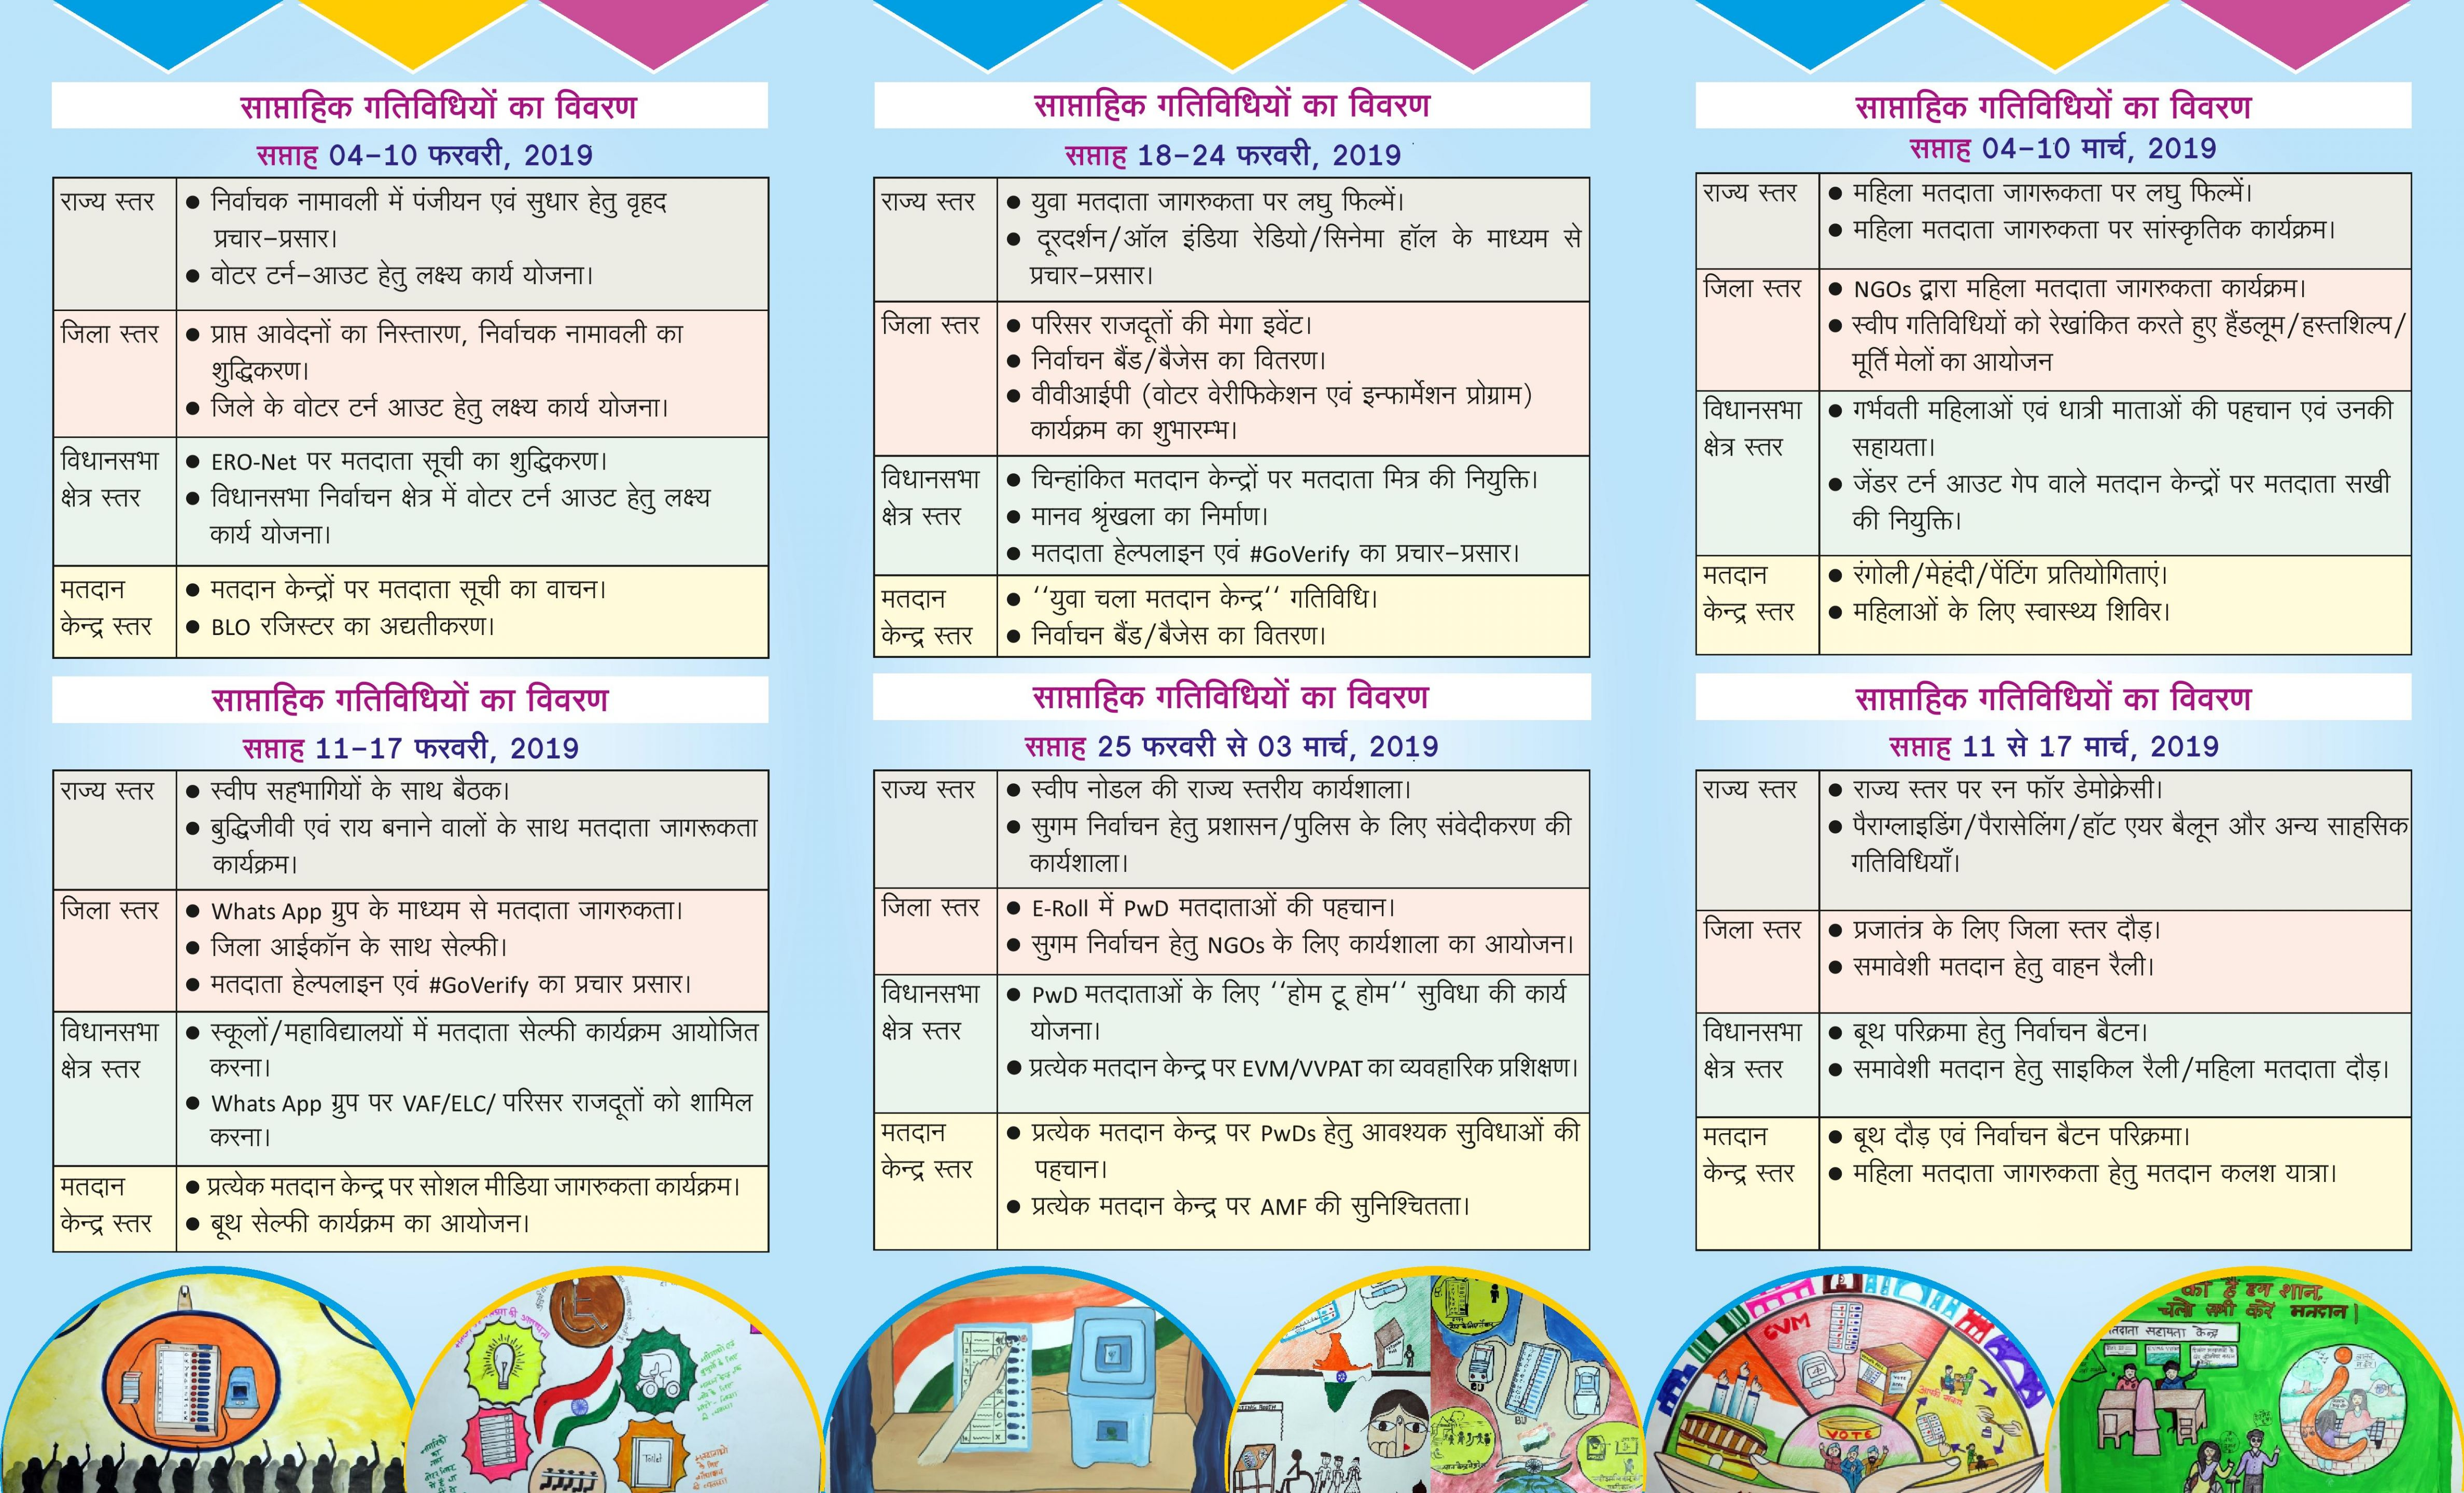 folder sveep (loksabha) Hindi-page-001.jpg